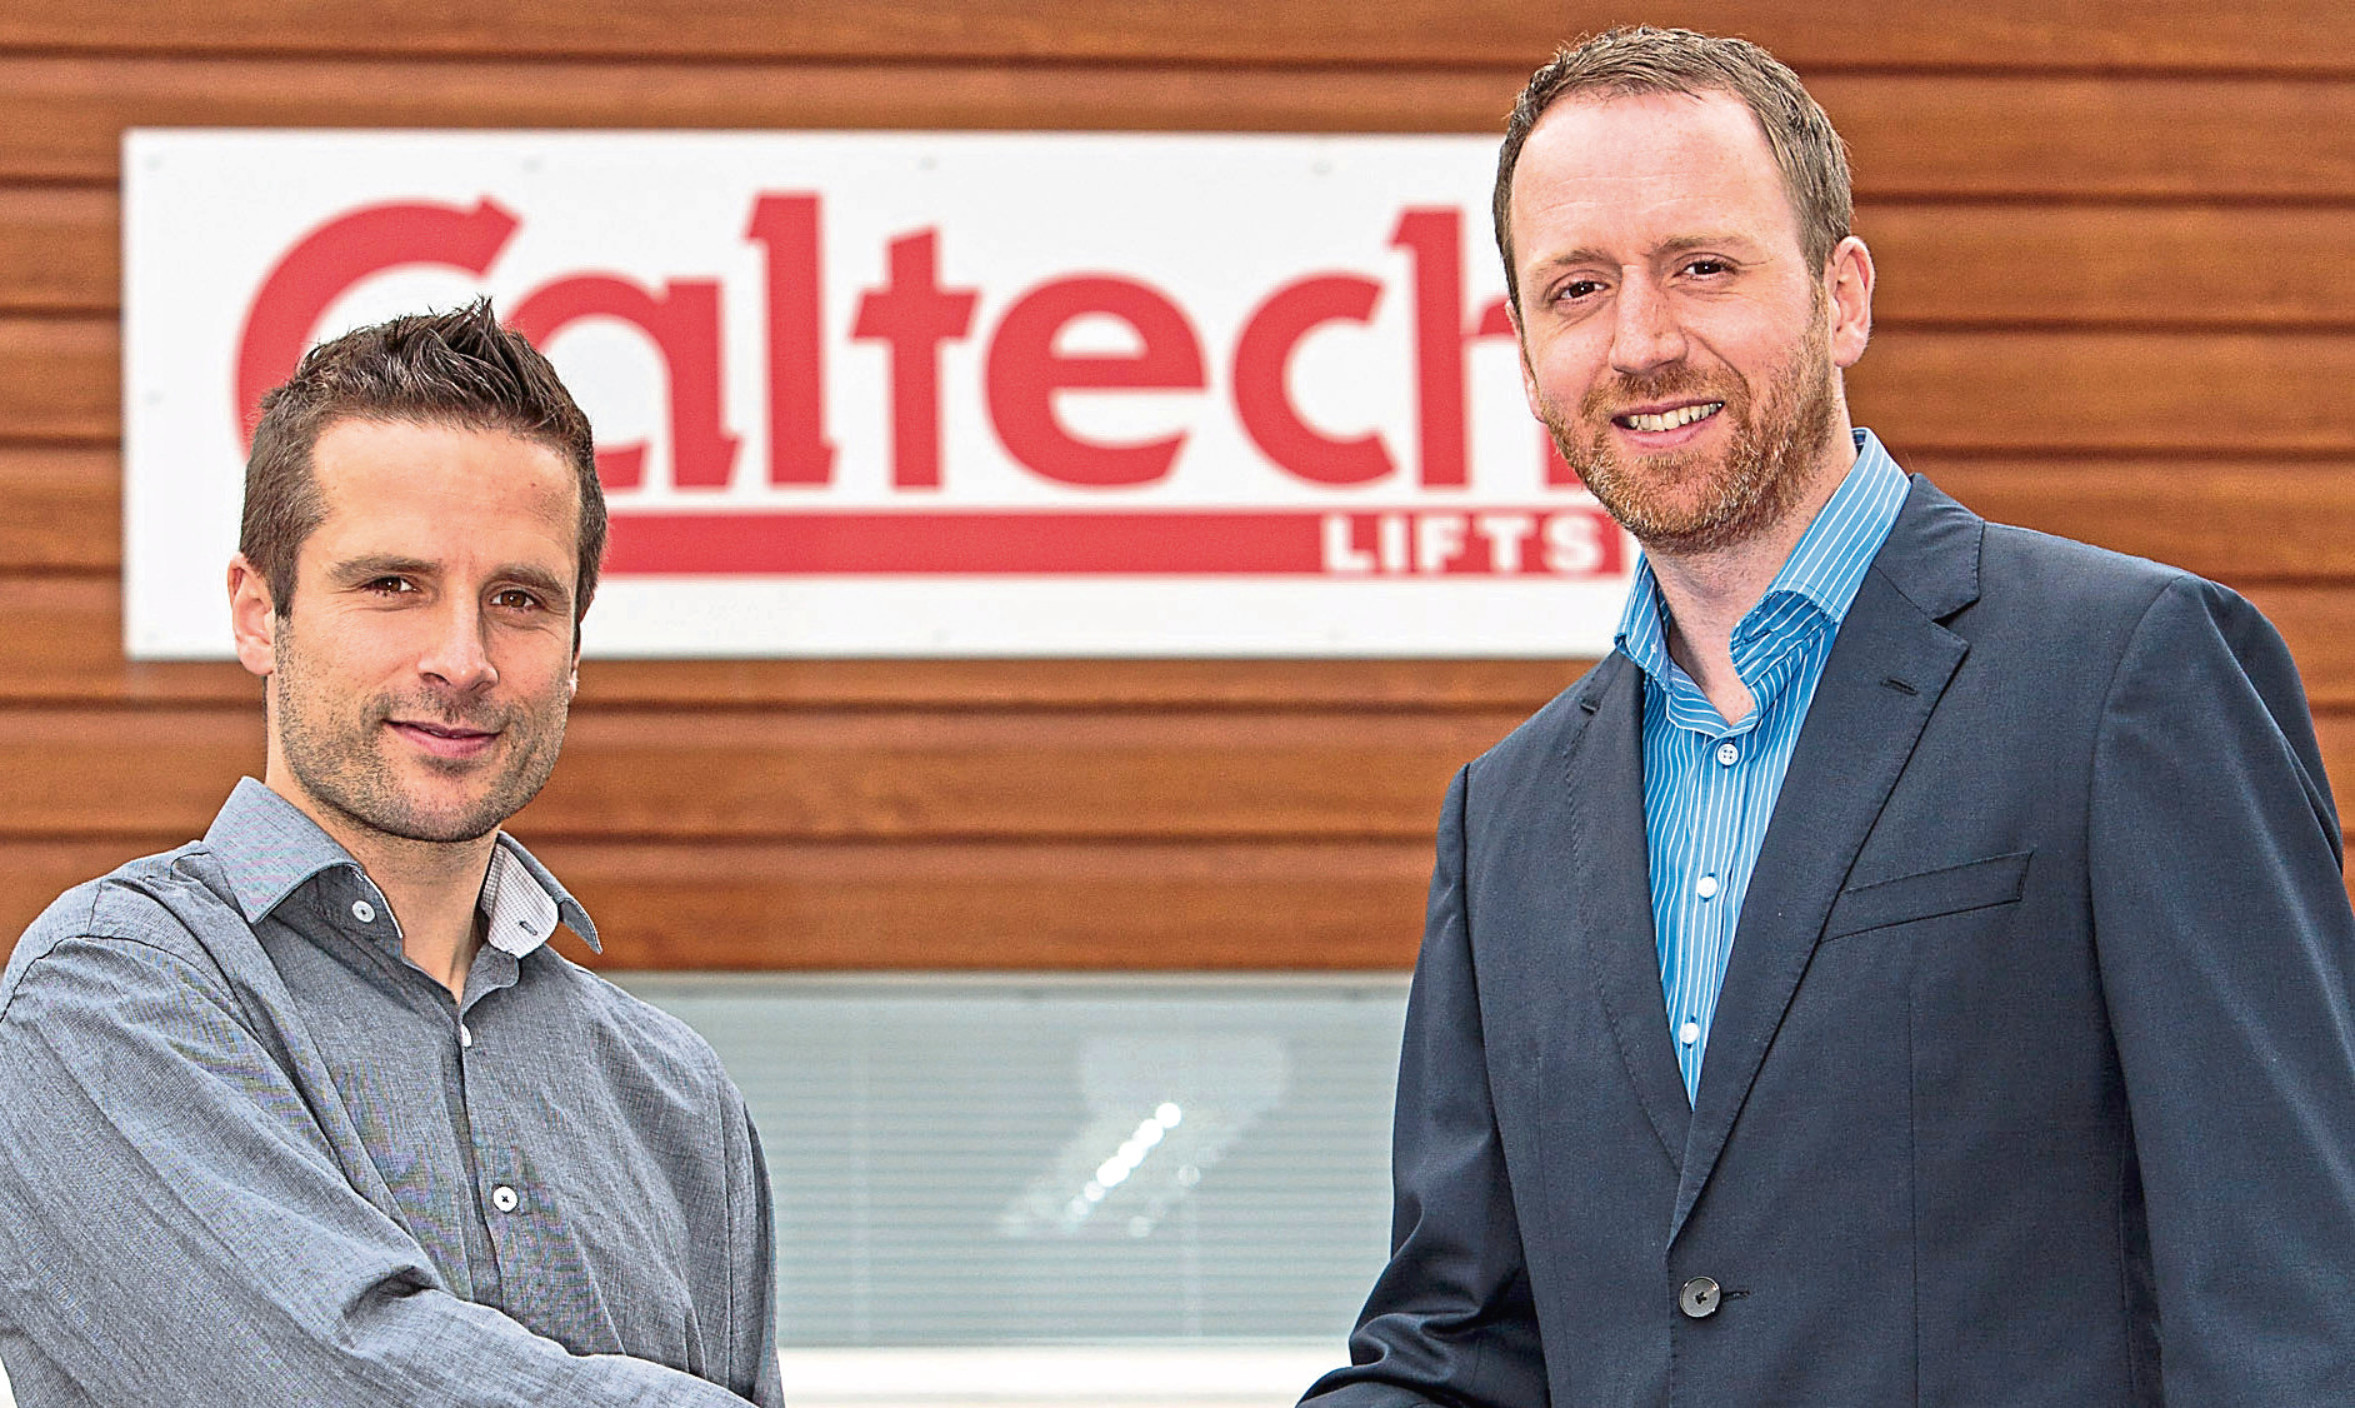 Caltech Lifts Managing Director Andrew Renwick (right) welcomes Scott Murray to the company.